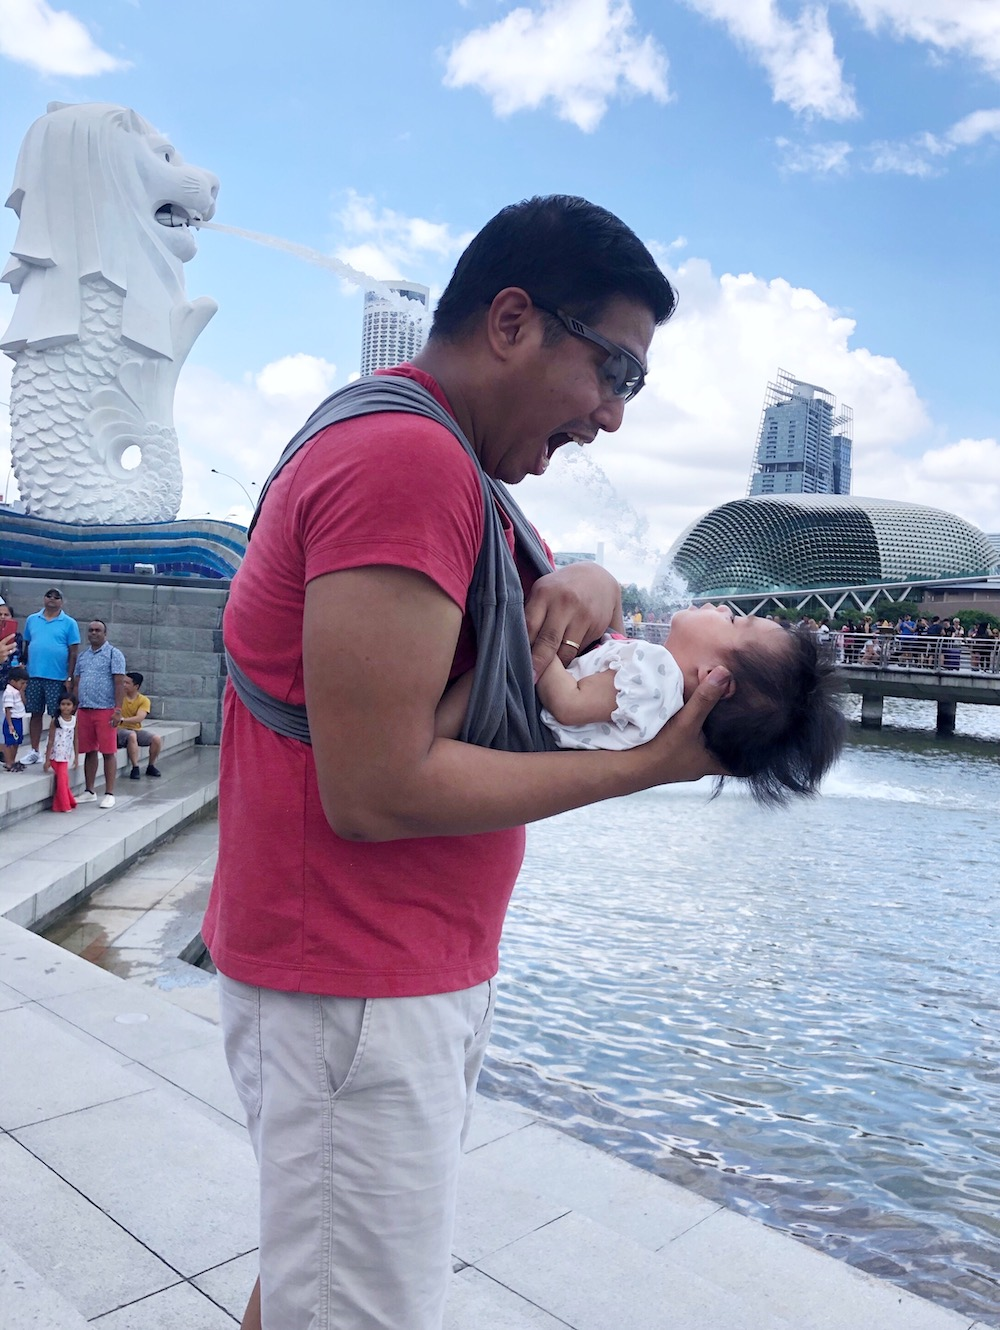 Take lots of fun photos at Merlion Park